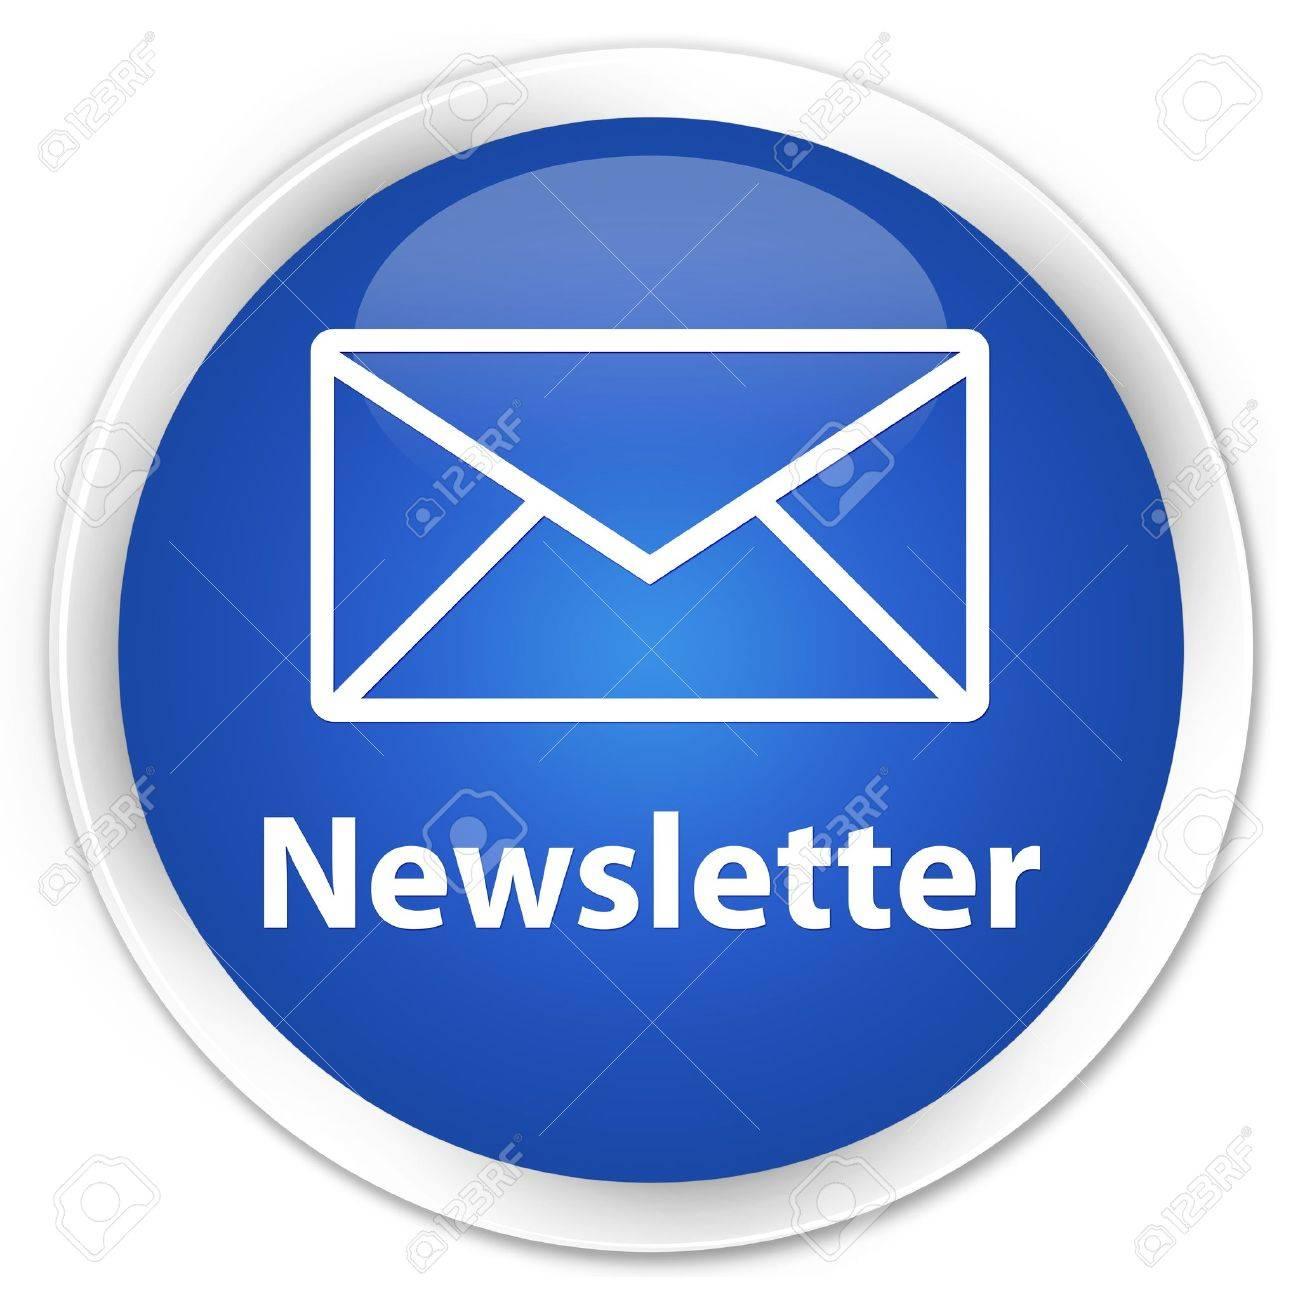 Newsletter glossy blue button Stock Photo - 15843416